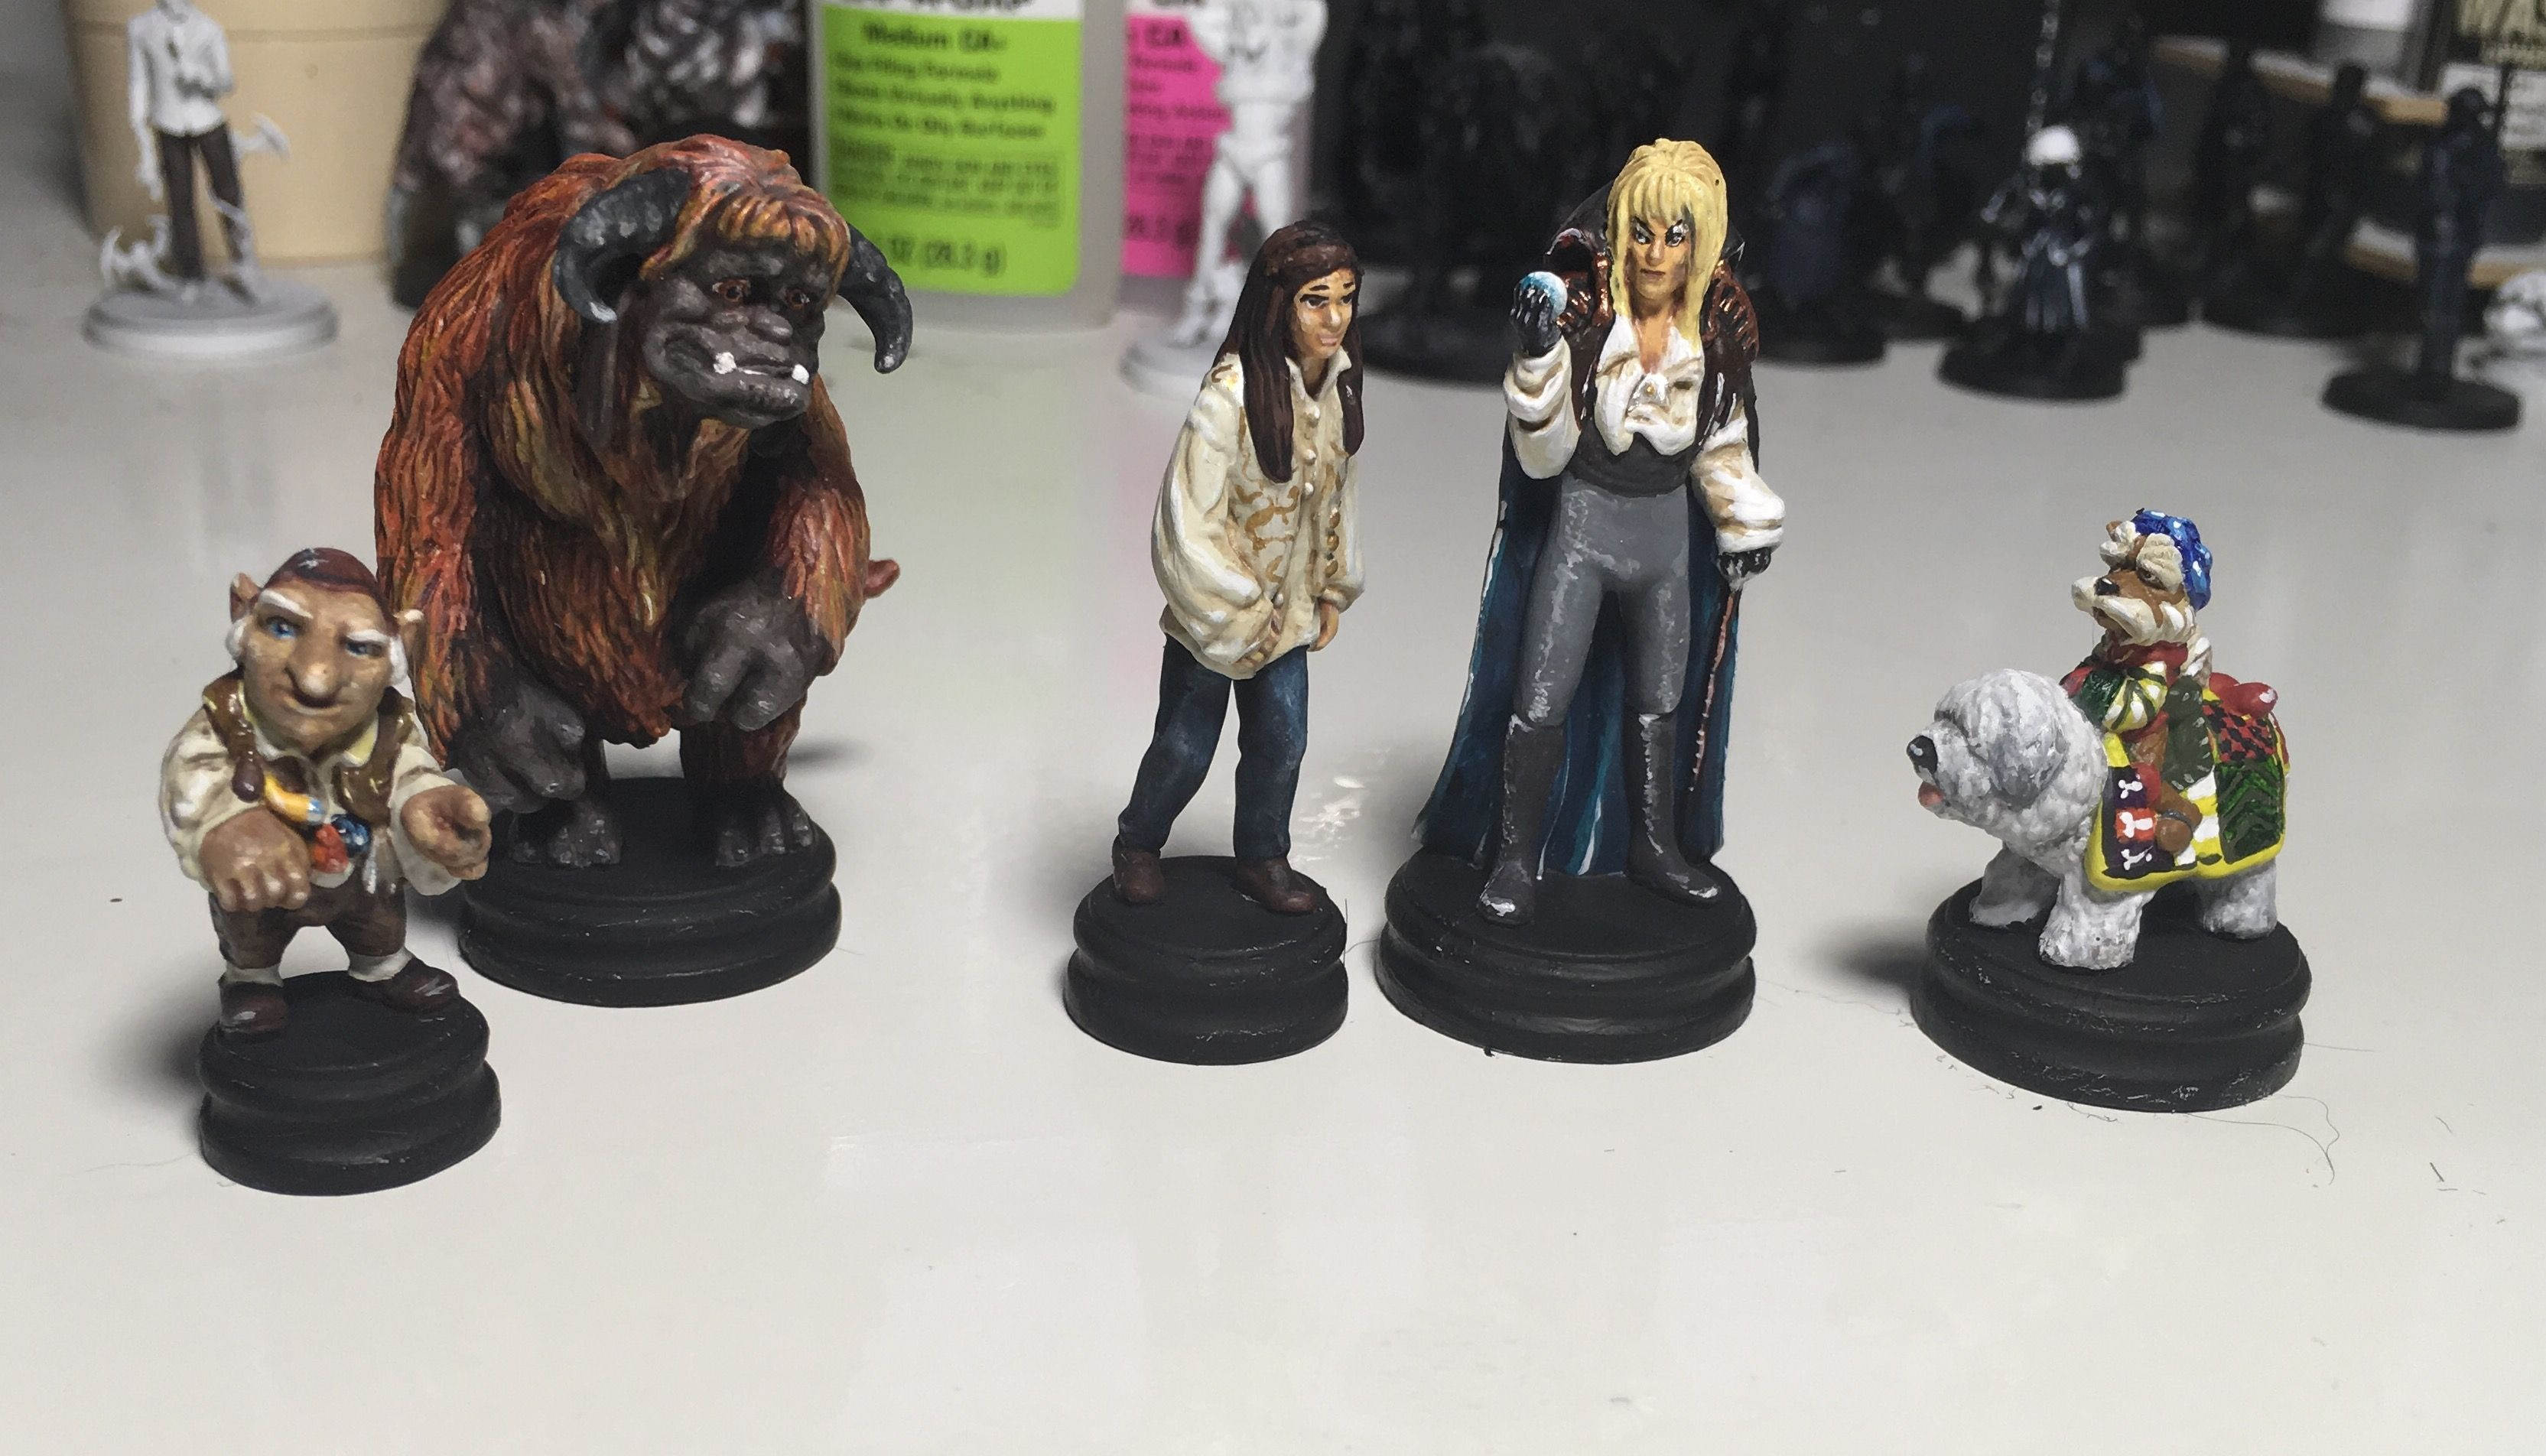 Labyrinth miniatures from the board game painted by Chantal Noordeloos